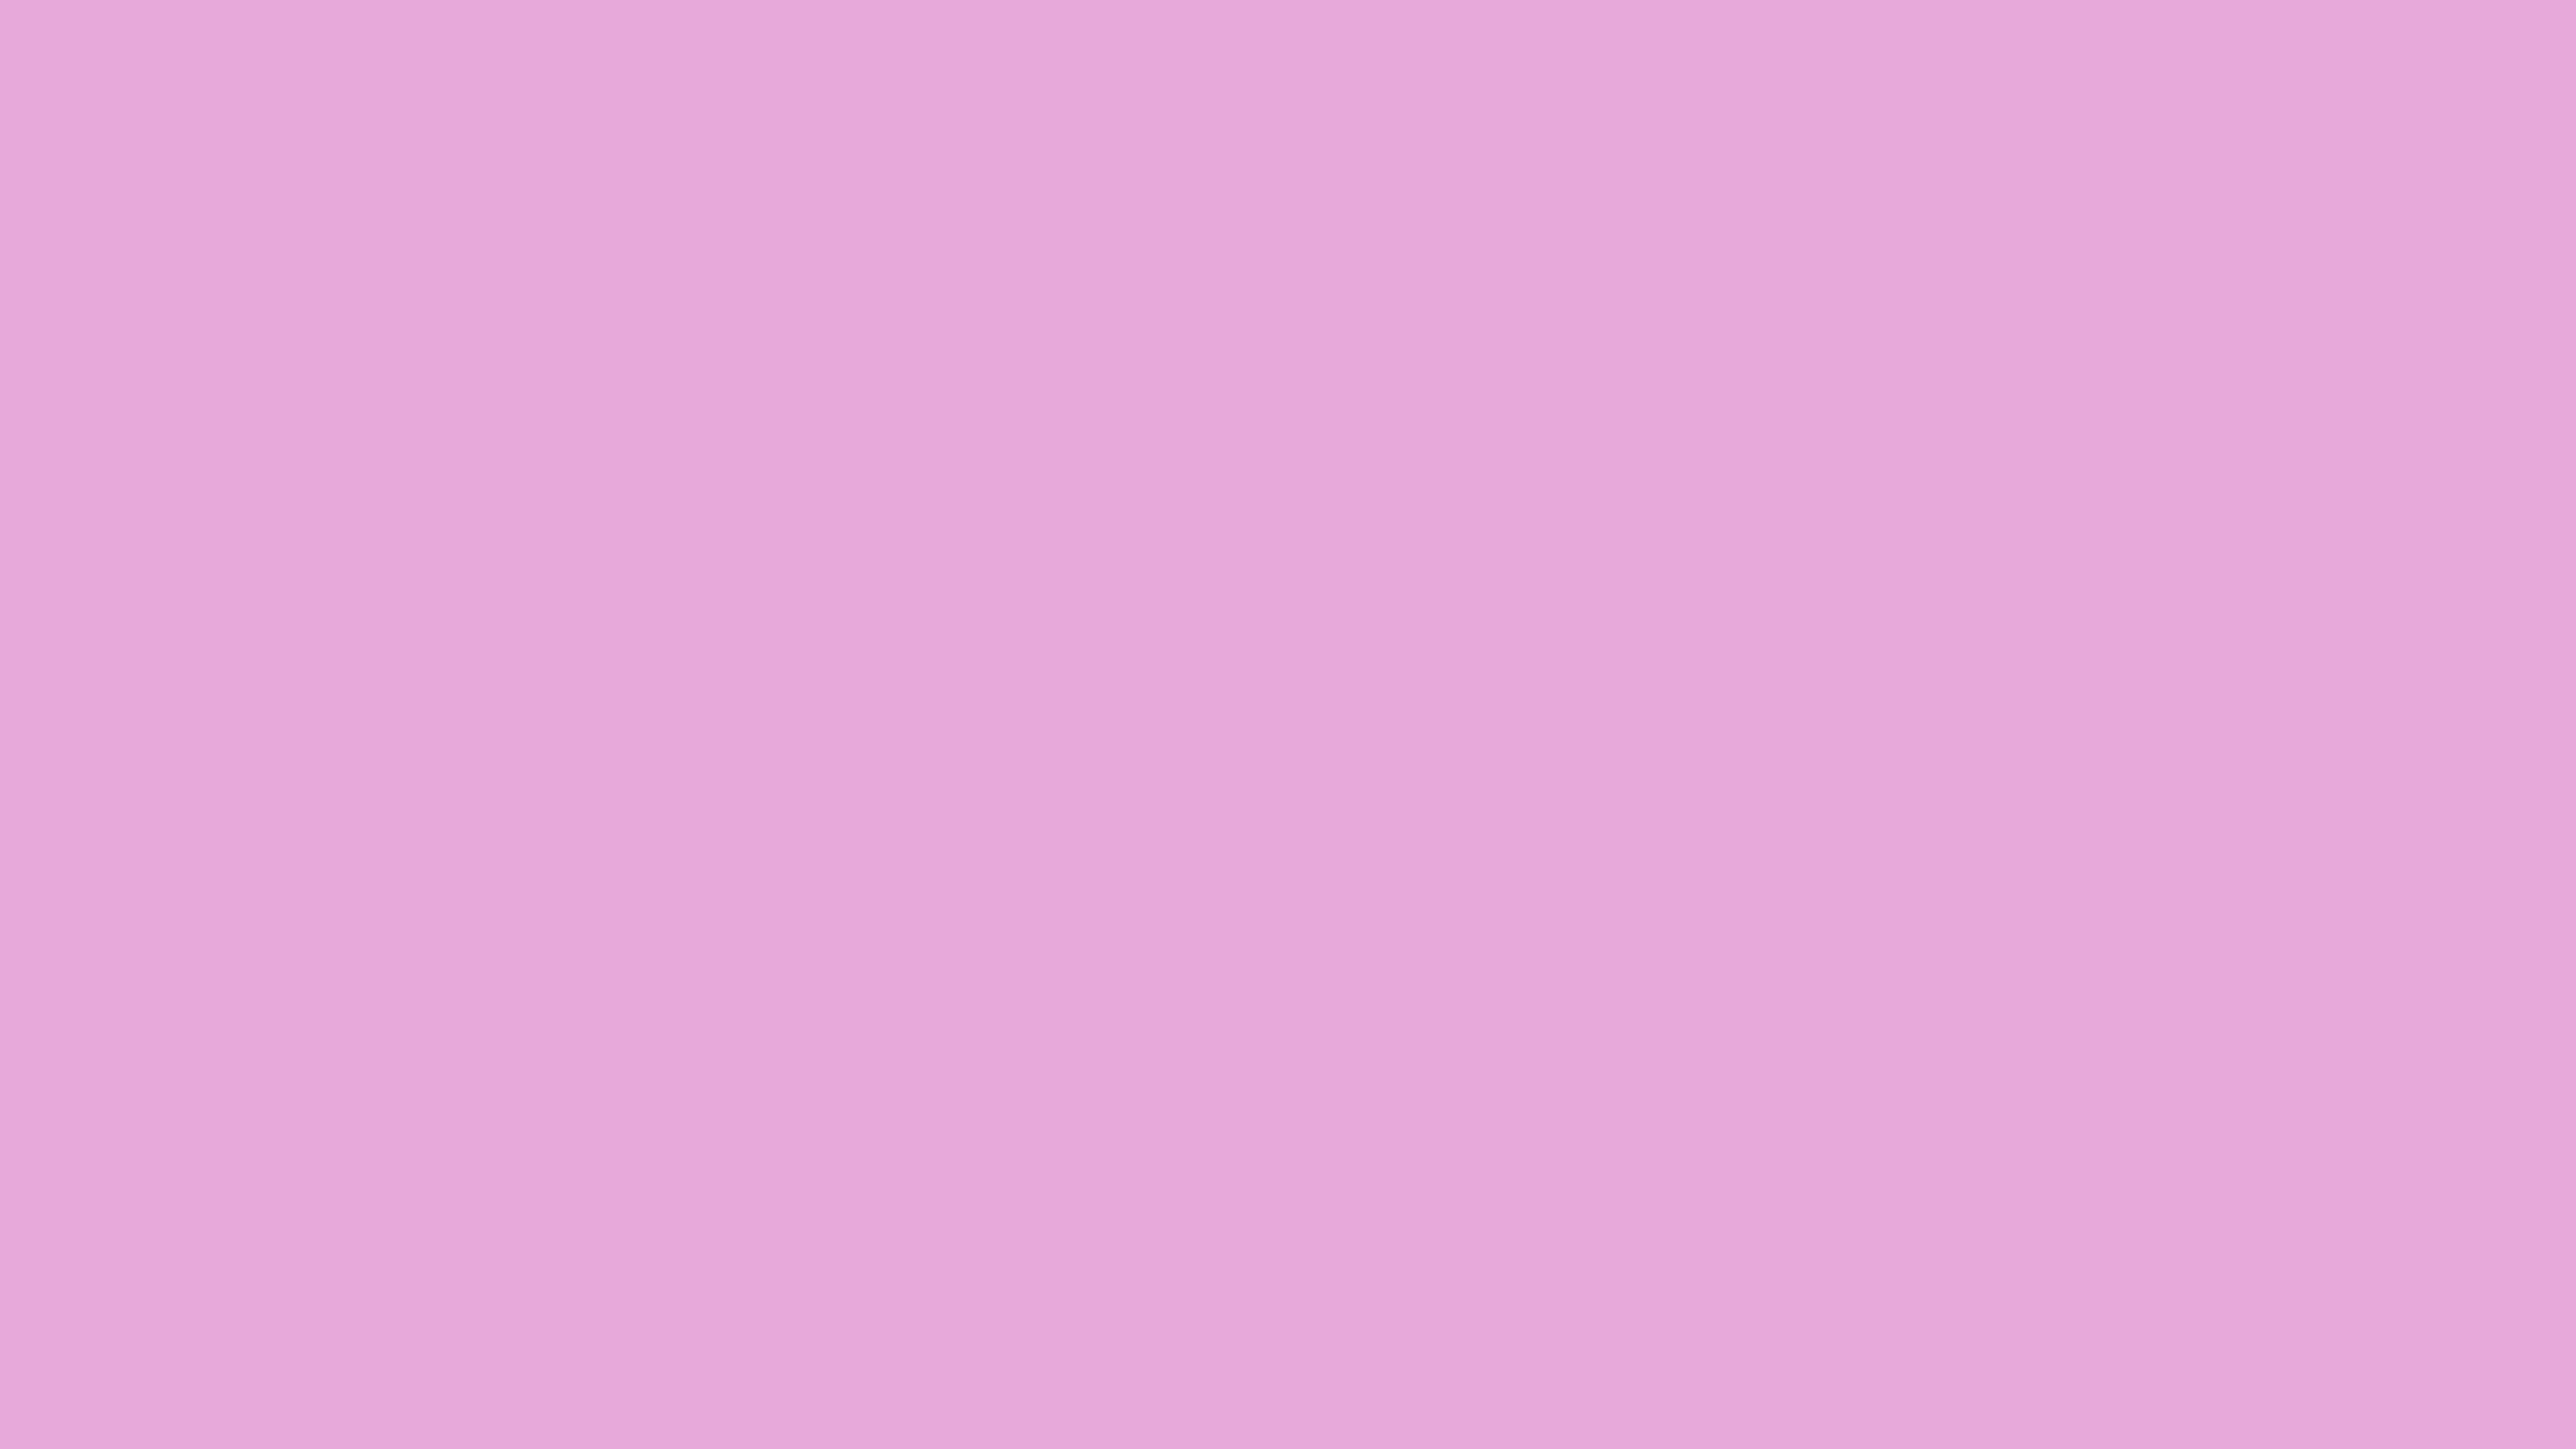 5120x2880 Light Orchid Solid Color Background